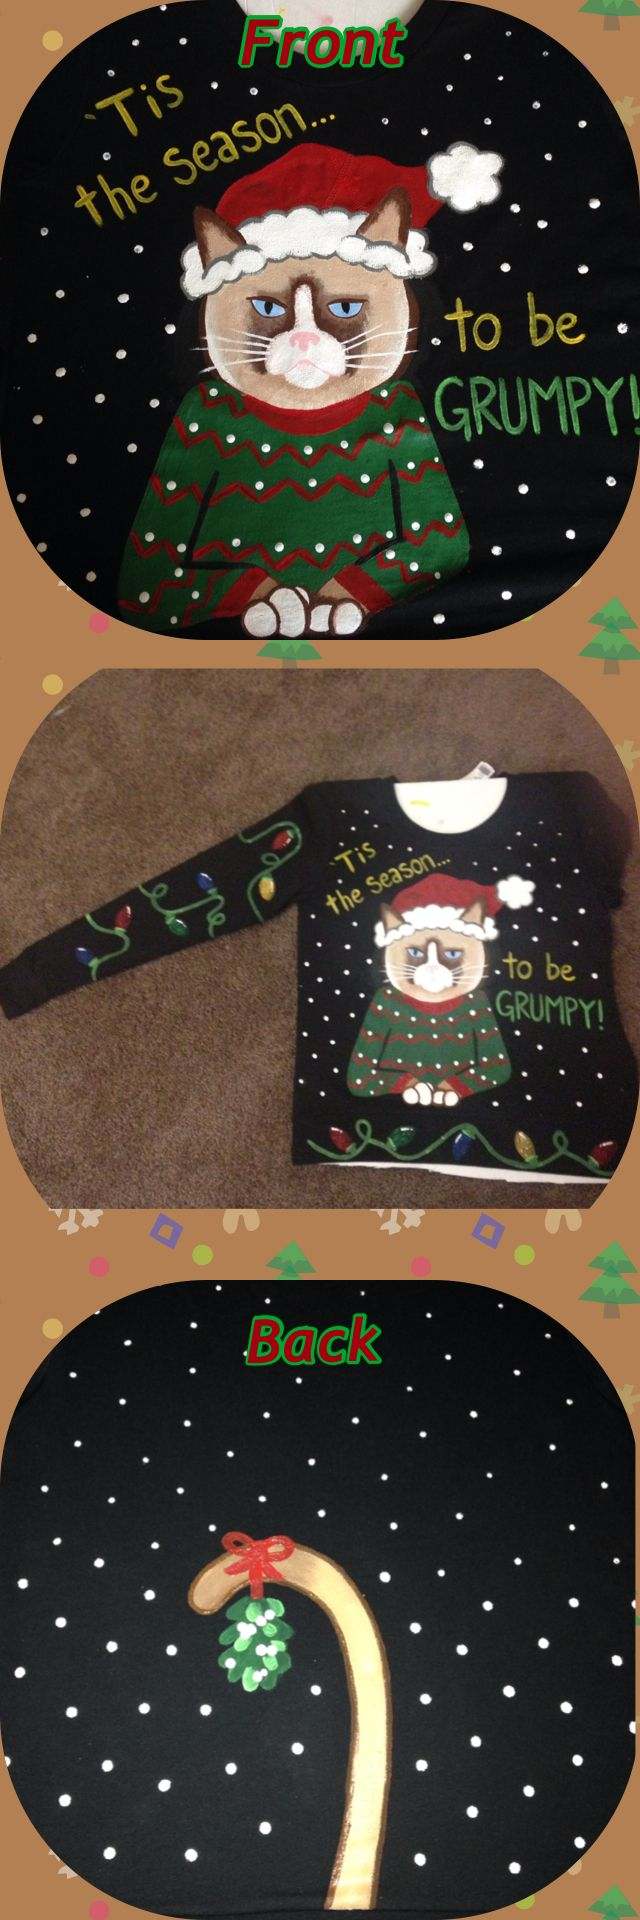 Hand painted Grumpy Cat Ugly Christmas sweater, by yours truly!